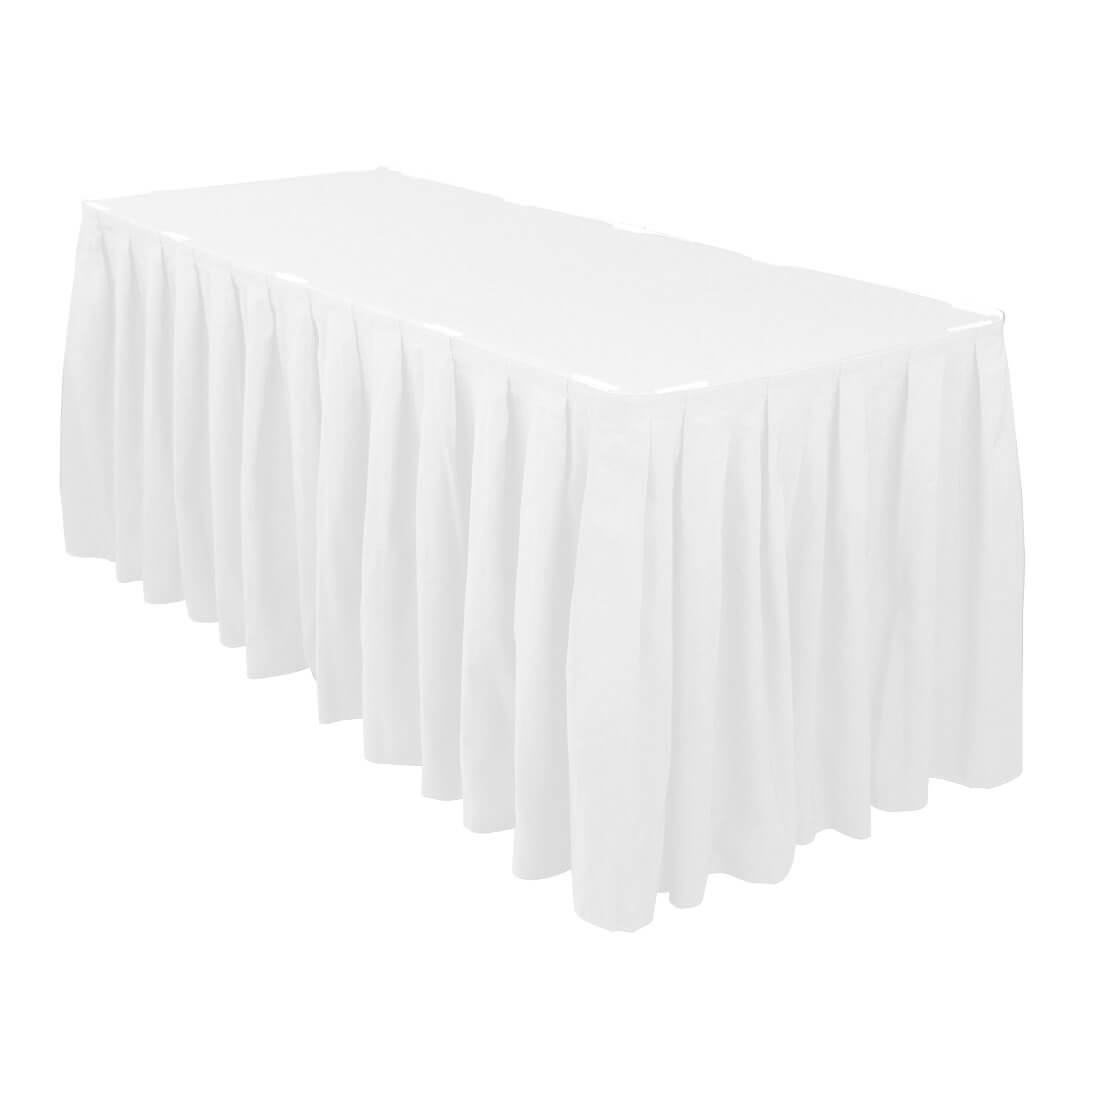 Banquet Table Skirt Rental in Wheaton